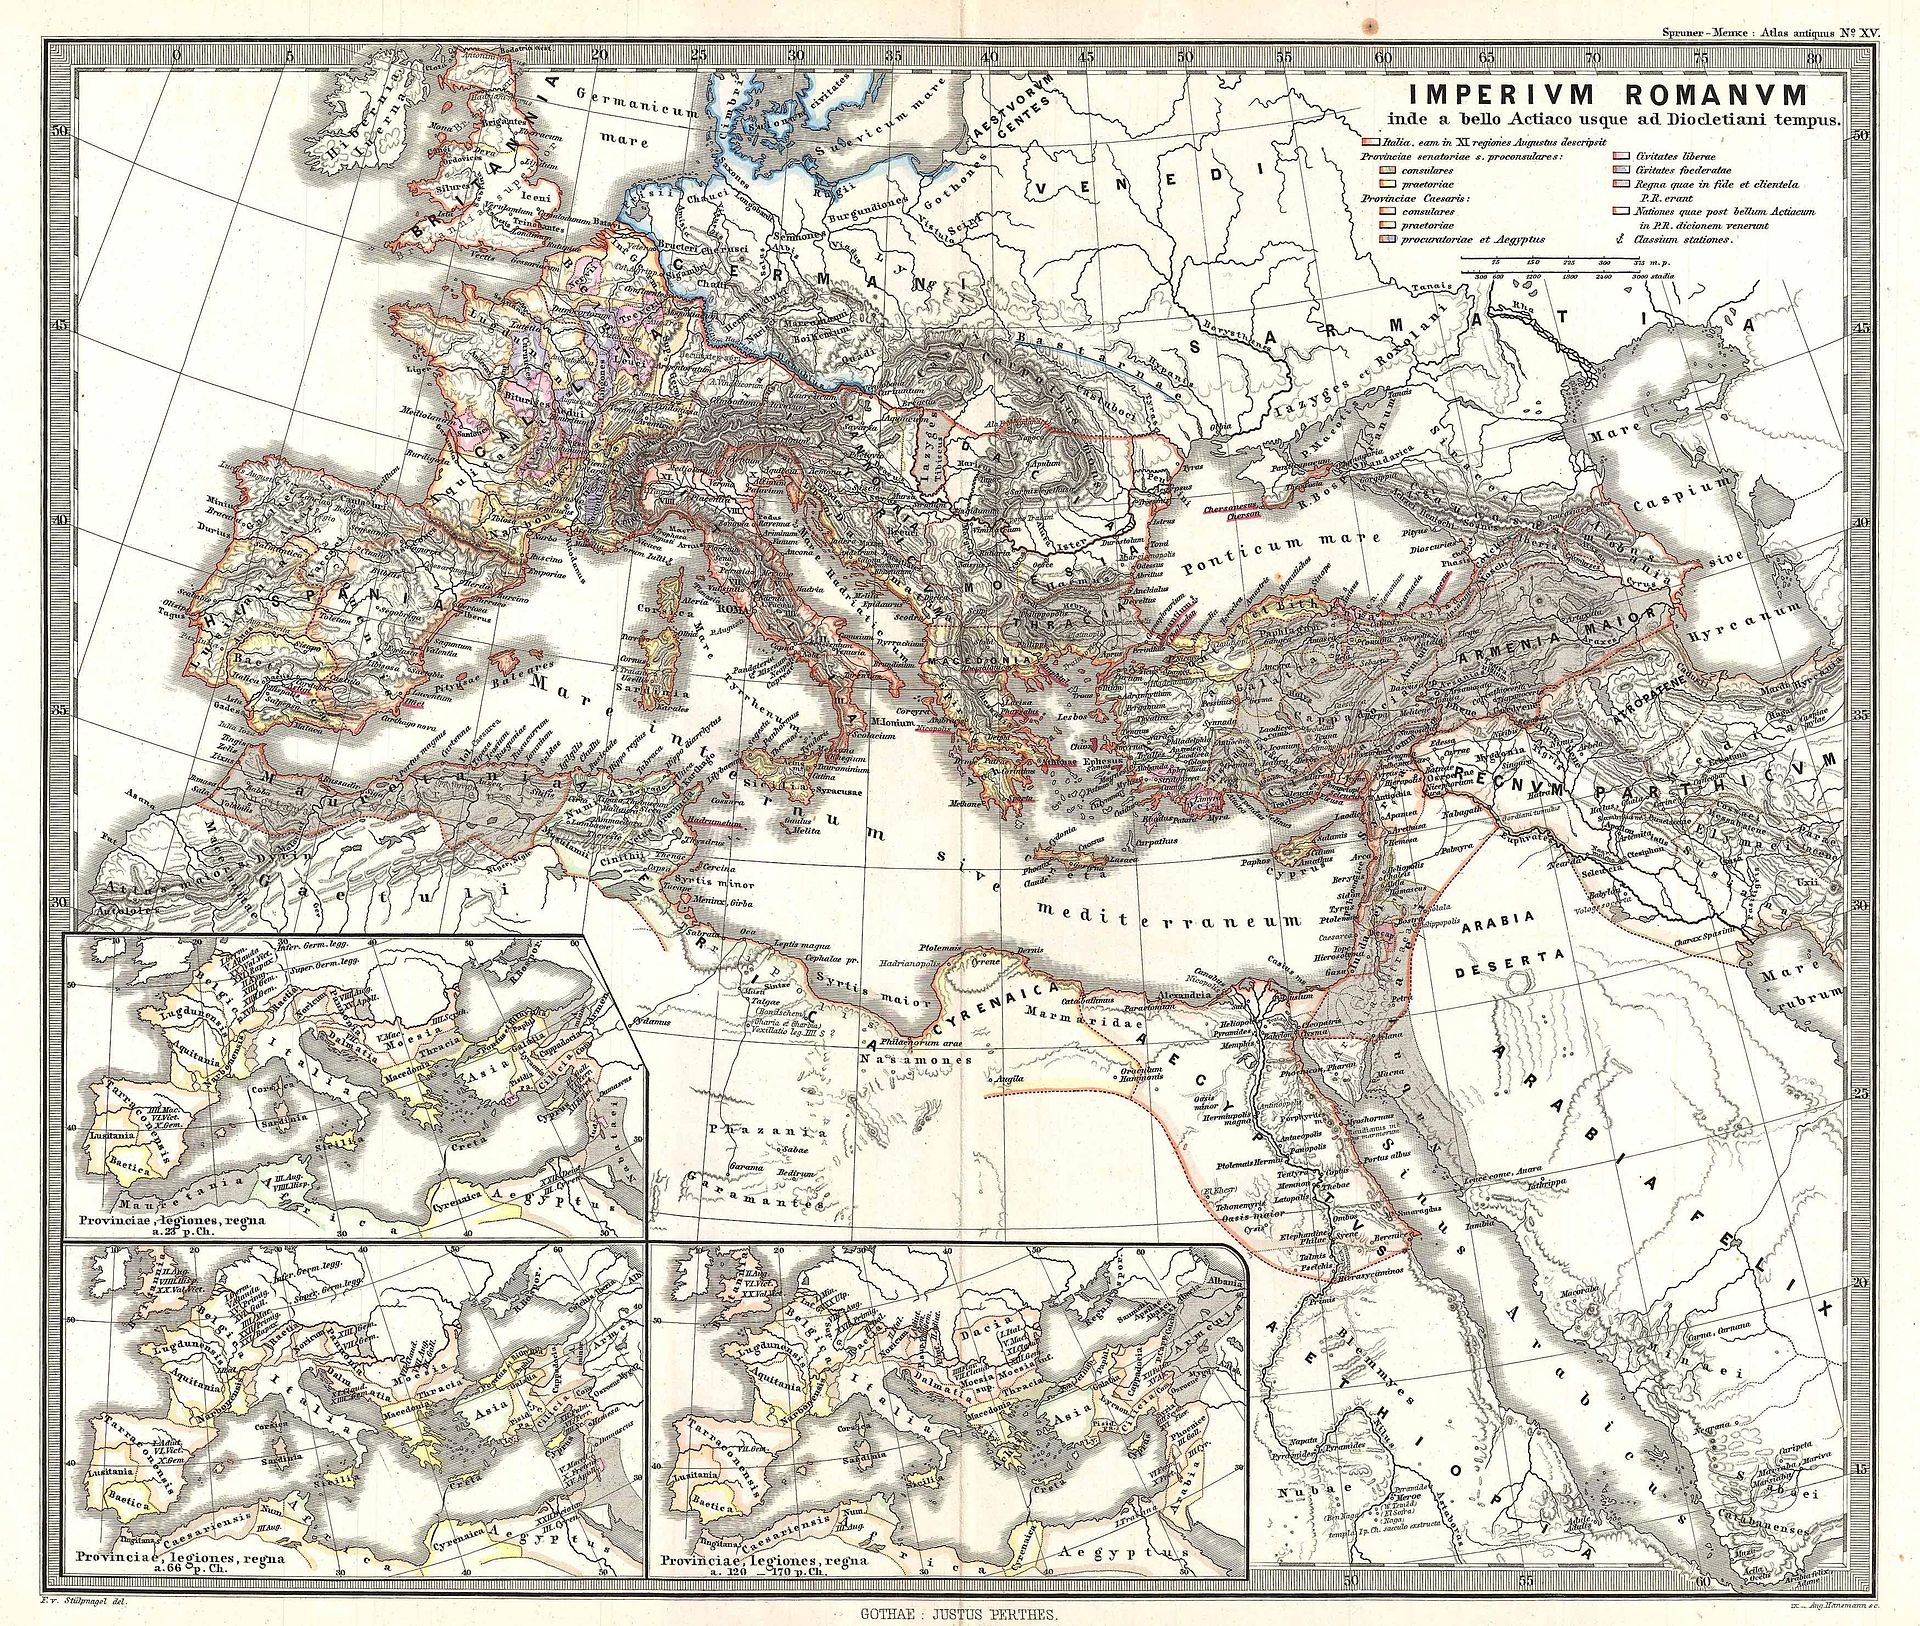 1920px-1865_Spruner_Map_of_the_Roman_Empire_under_Diocletian_-_Geographicus_-_ImperiumRomanumDiocletian-spruner-1865